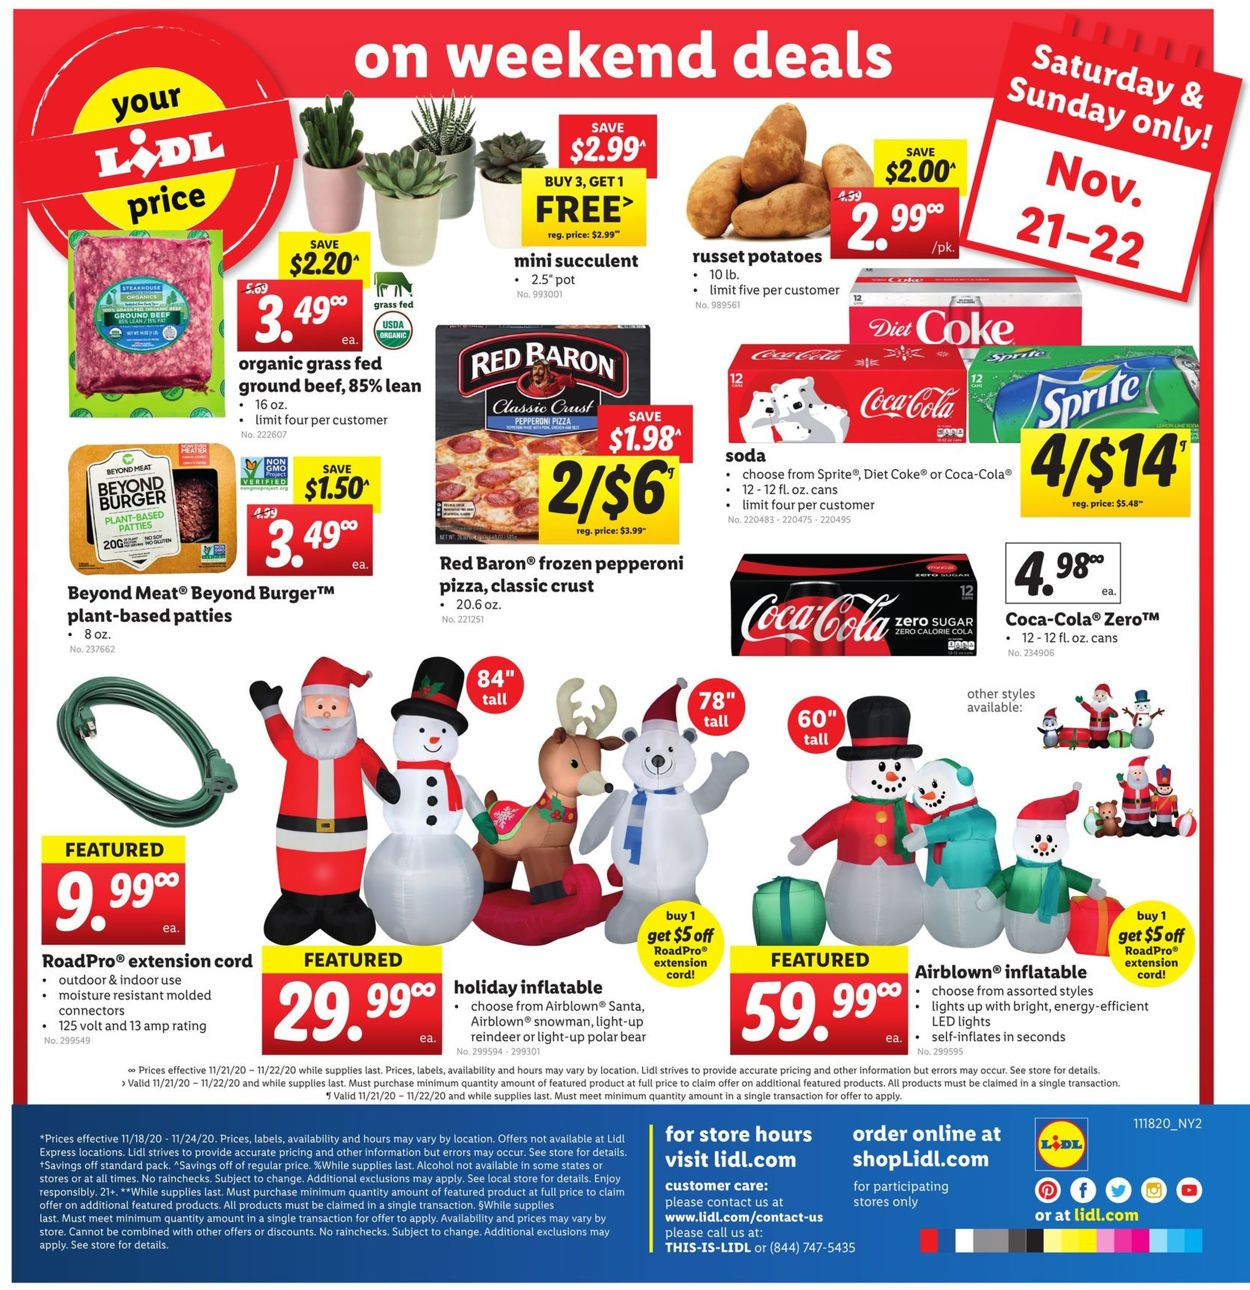 Lowes Led Christmas Lights 11-24-2020 Lidl Current weekly ad 11/18   11/24/2020 [25]   frequent ads.com